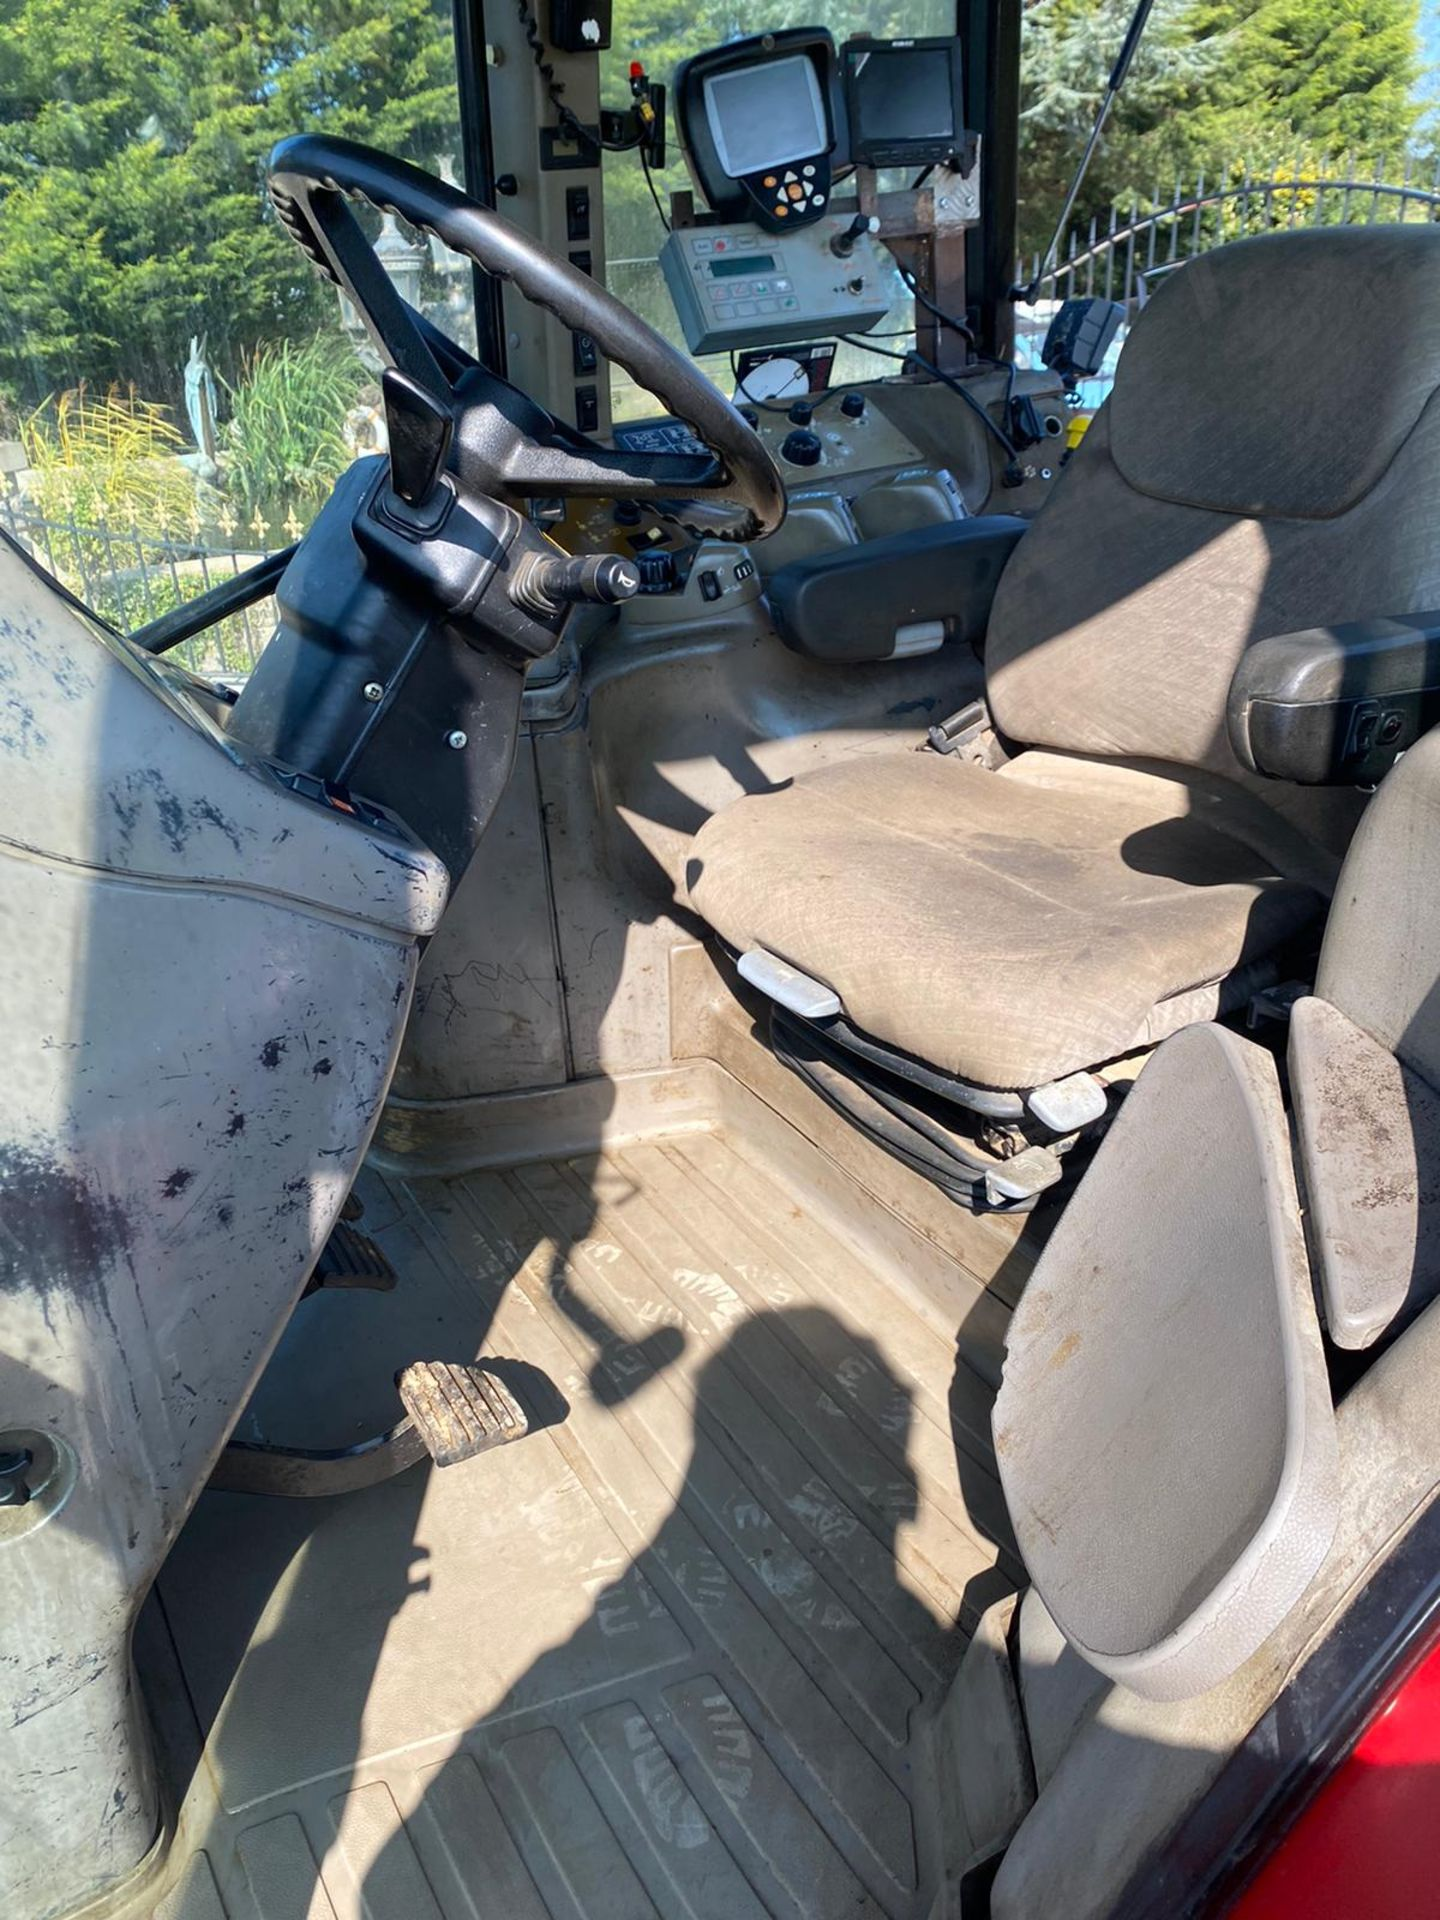 CASE MXM190 TRACTOR, VERY GOOD TYRES, TRANSPORT BOX ON THE FRONT, FRONT SUSPENSION *PLUS VAT* - Image 7 of 11